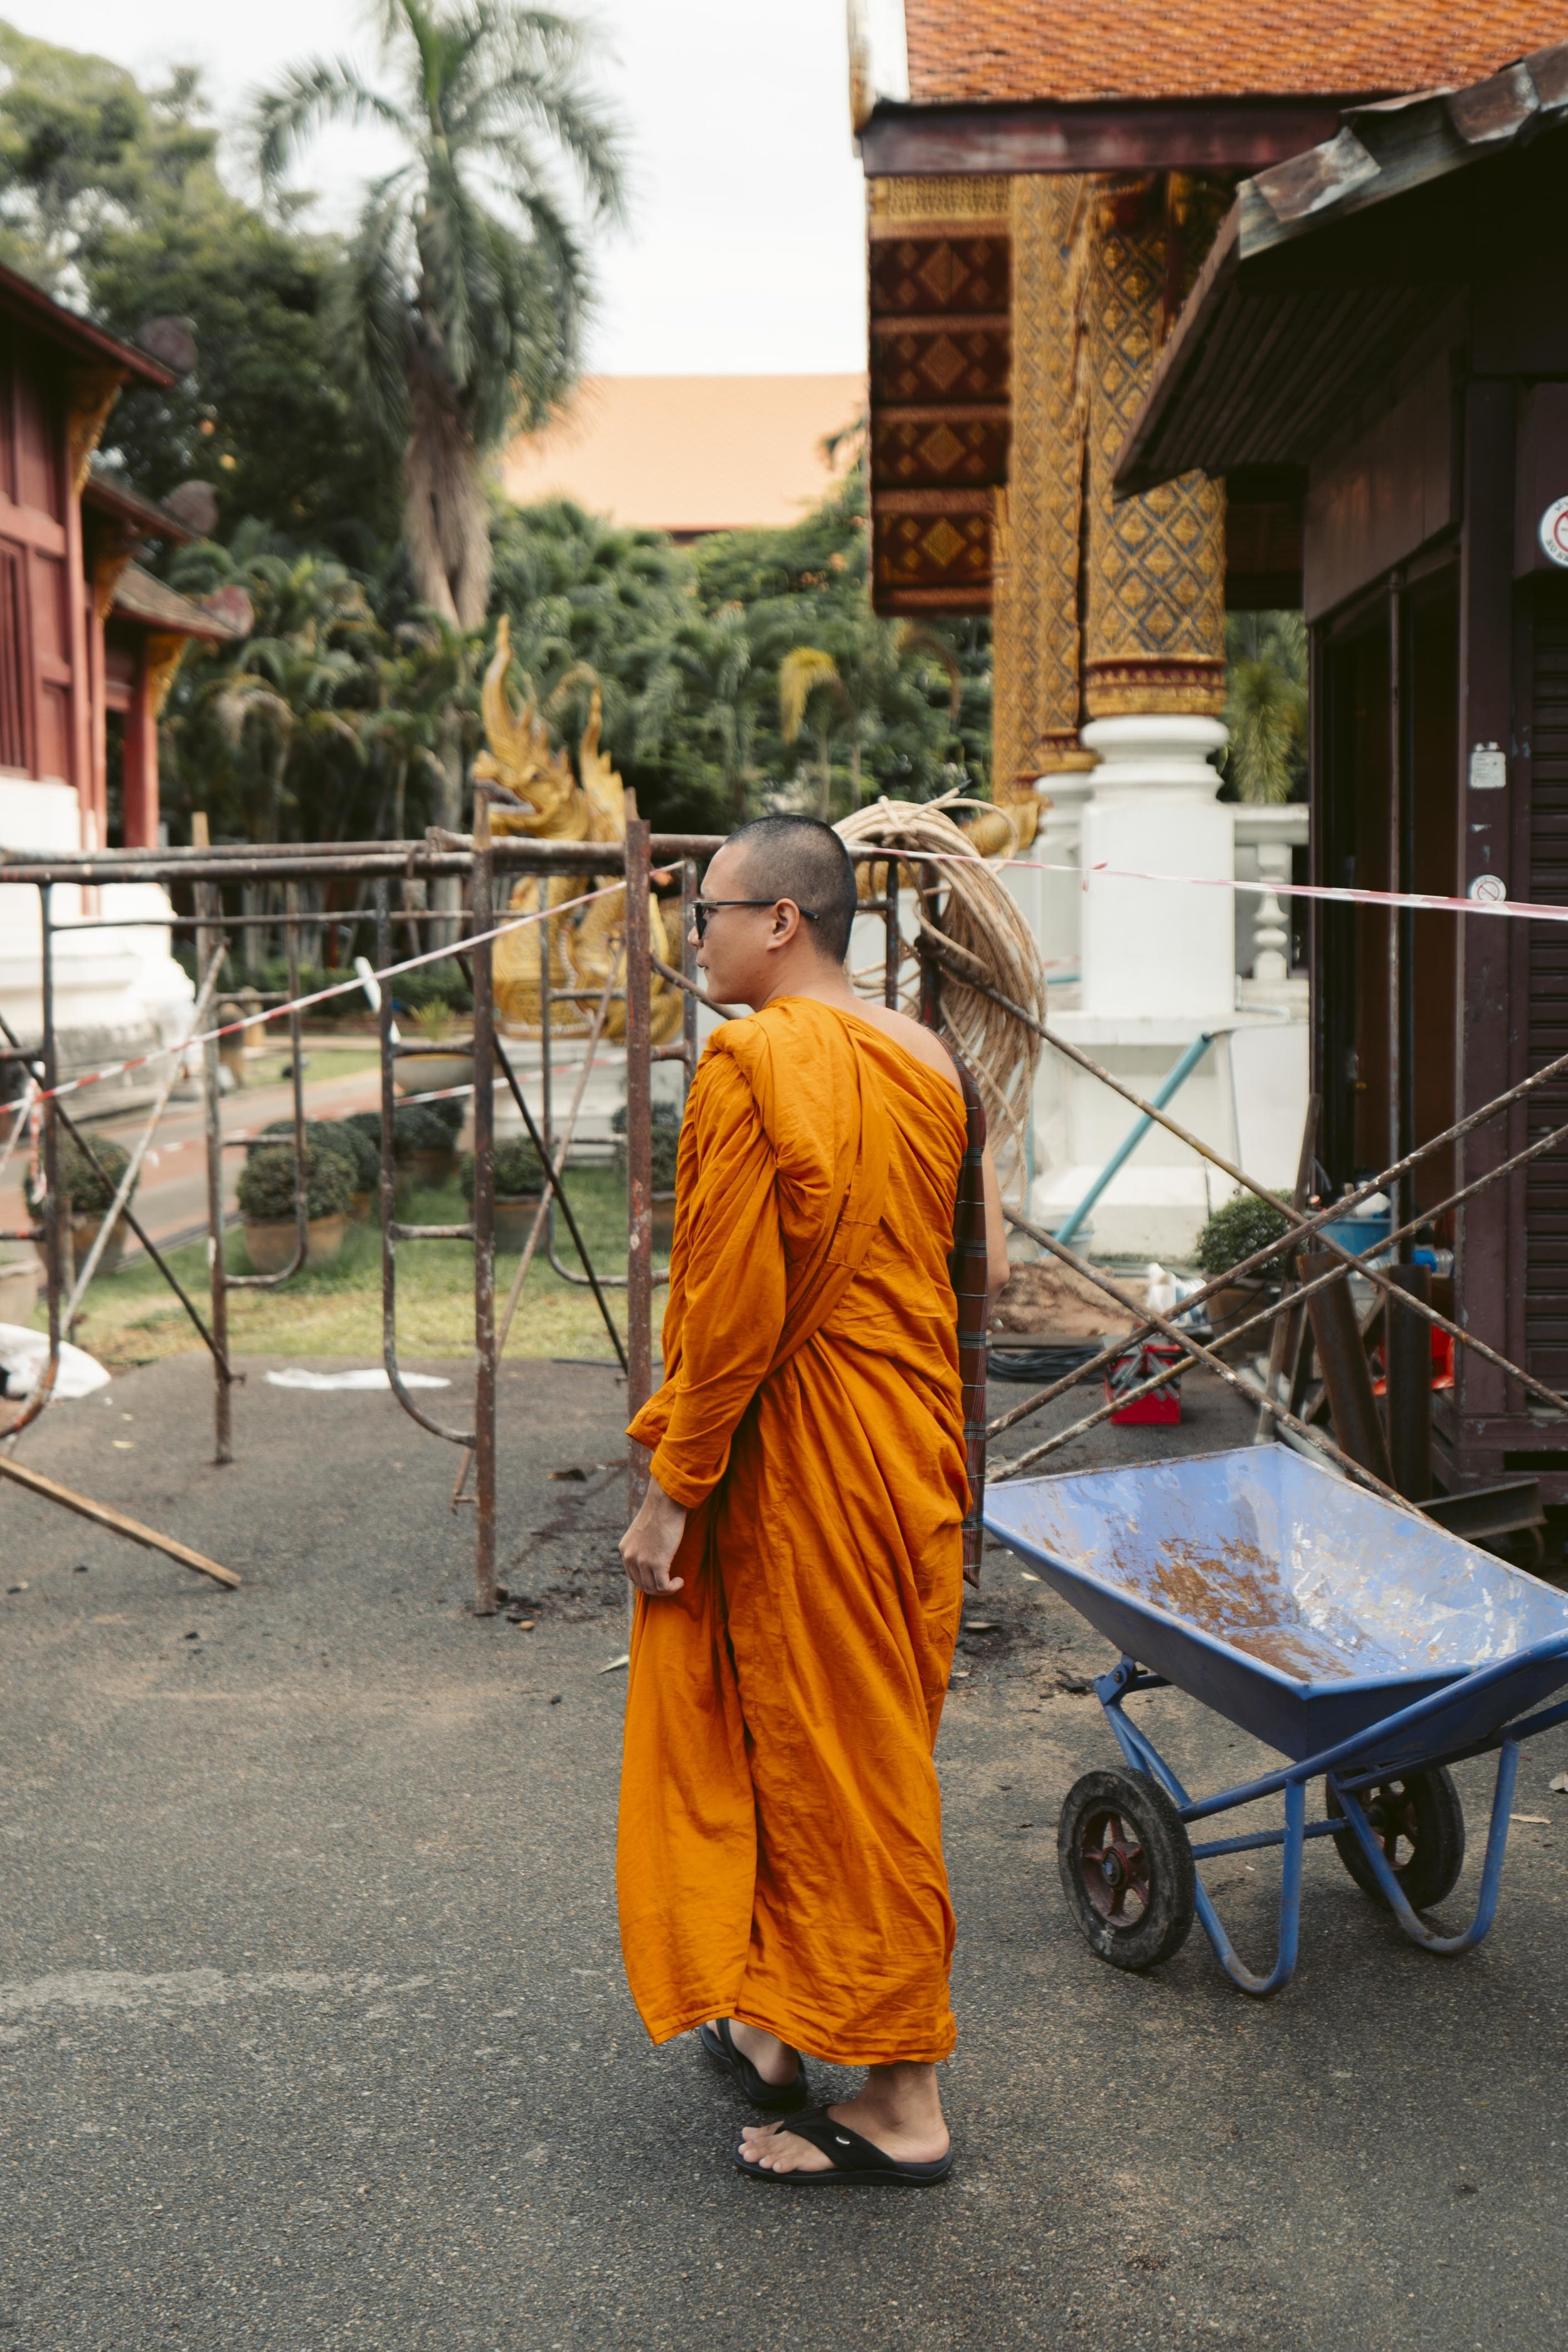 Its's not uncommon to see monks roll around in Chiang Mai! They're super cool.